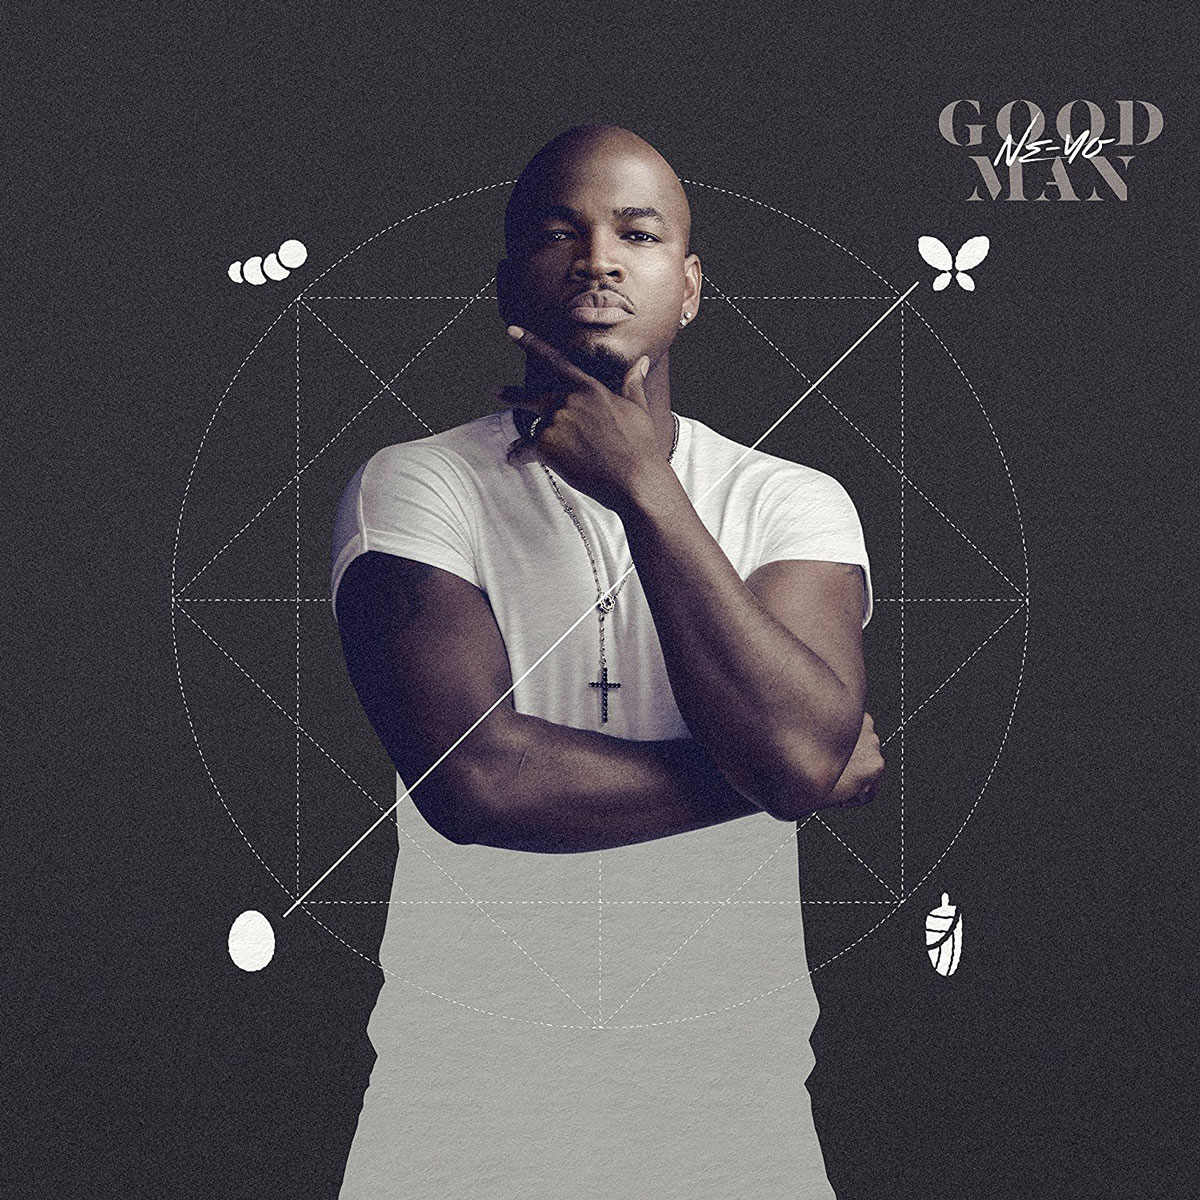 Ne-Yo -. Good Man